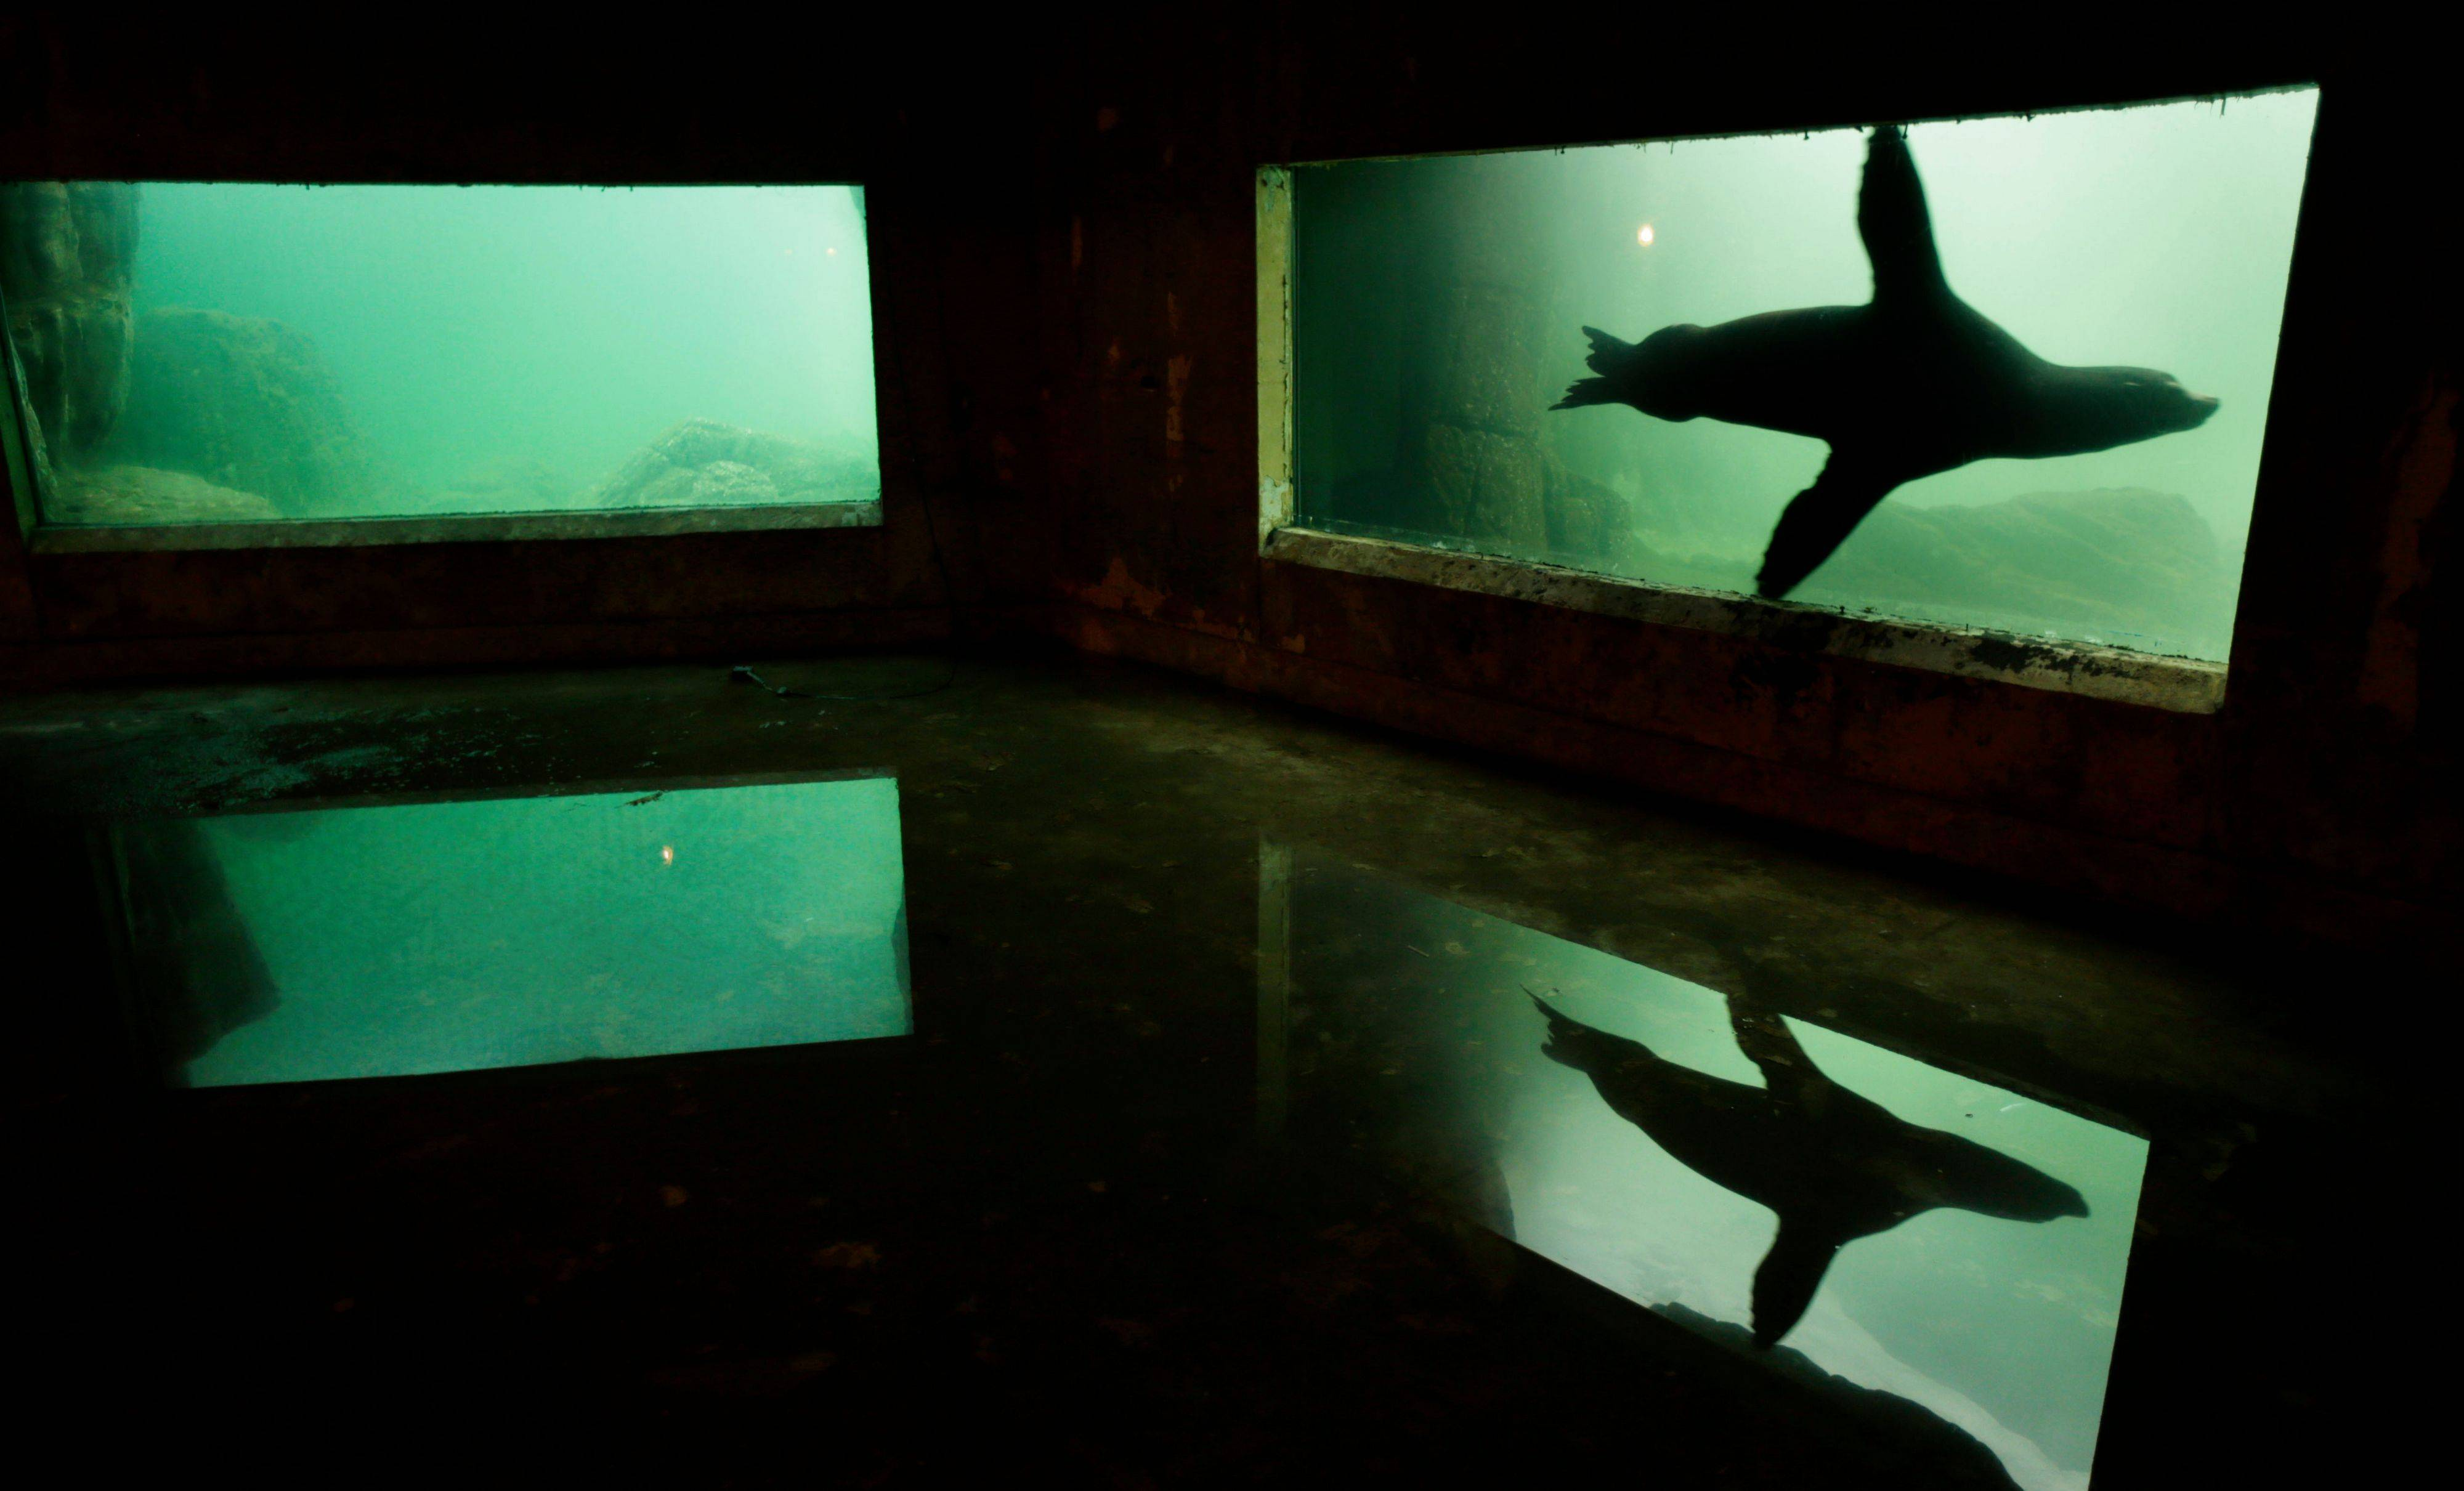 A sea lion is reflected in a puddle of water on the floor of an exhibit flooded to the ceiling during Superstorm Sandy at the Wildlife Conservation Society's New York Aquarium on Coney Island.